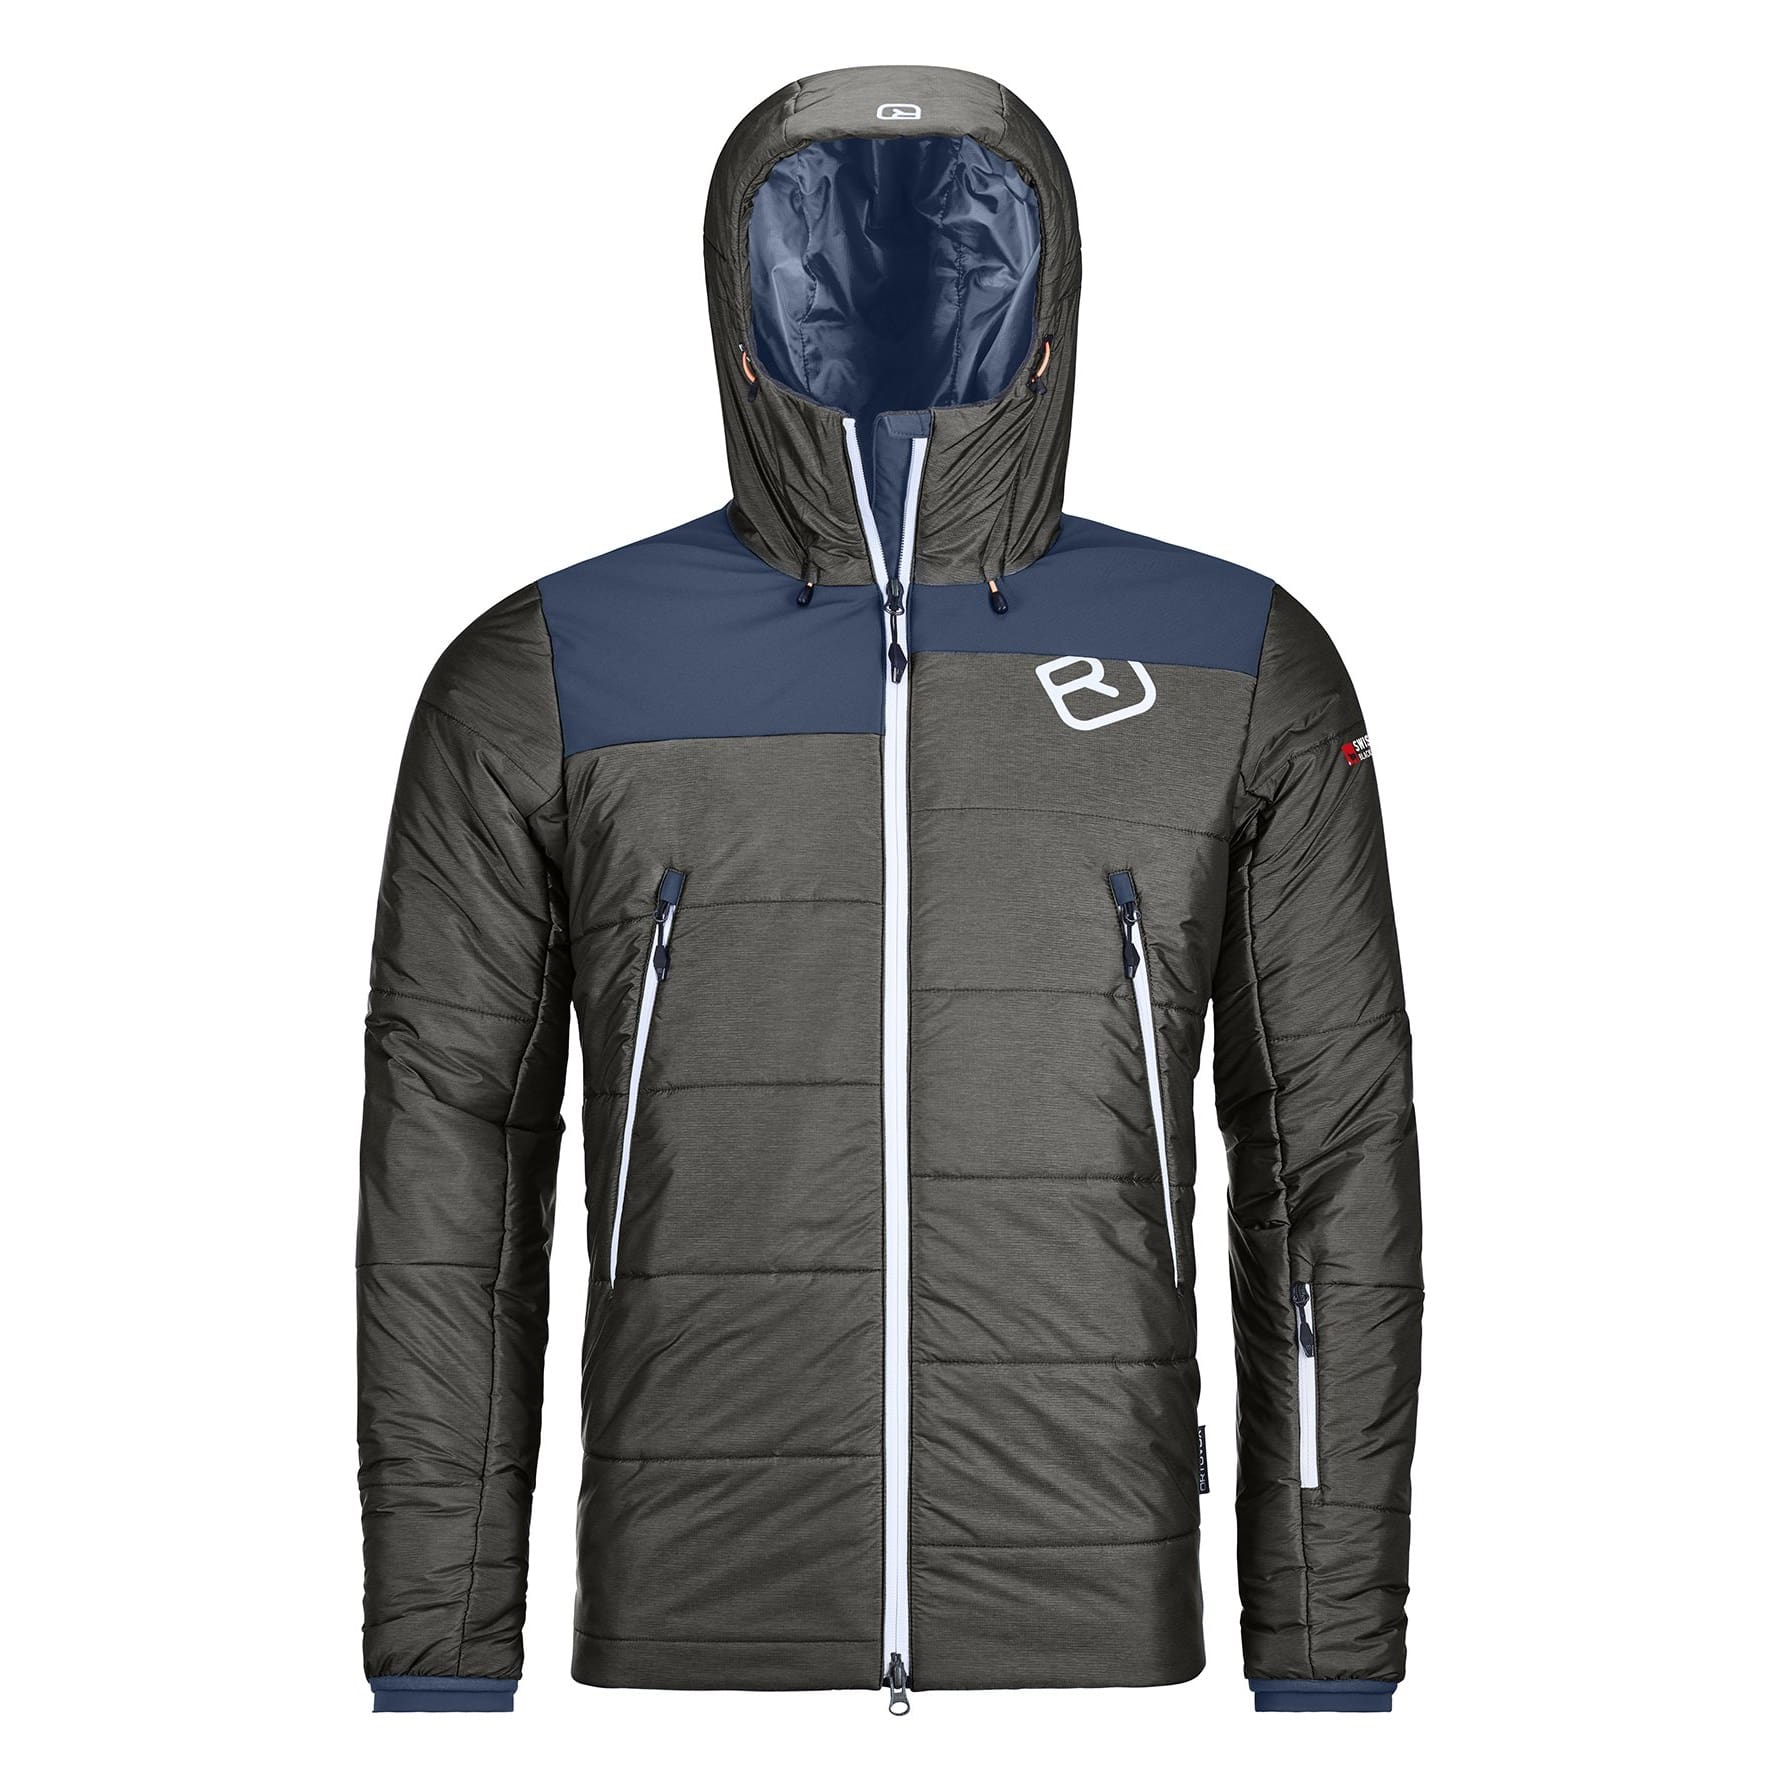 Swisswool Verbier Jacket Men, Ortovox